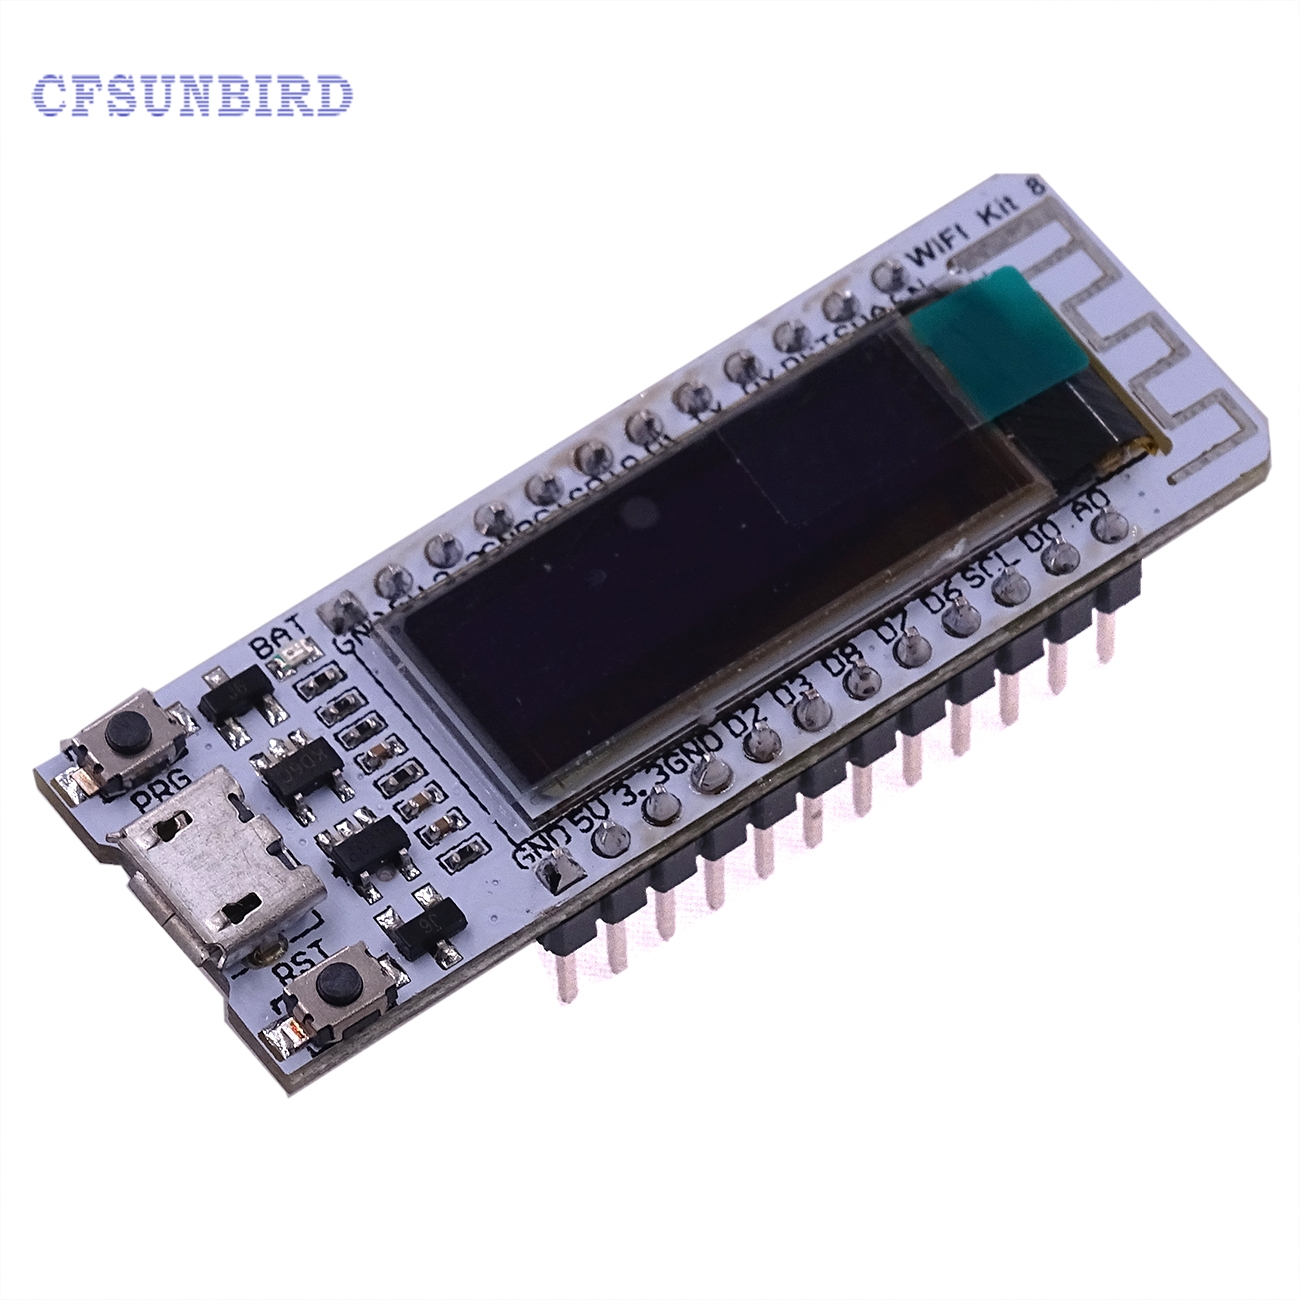 1pcs ESP8266 WIFI Chip 0.91 inch OLED CP2014 32Mb Flash ESP 8266 Module Internet of things Board PCB for NodeMcu for Arduino lua wifi nodemcu internet of things development board based on cp2102 esp8266